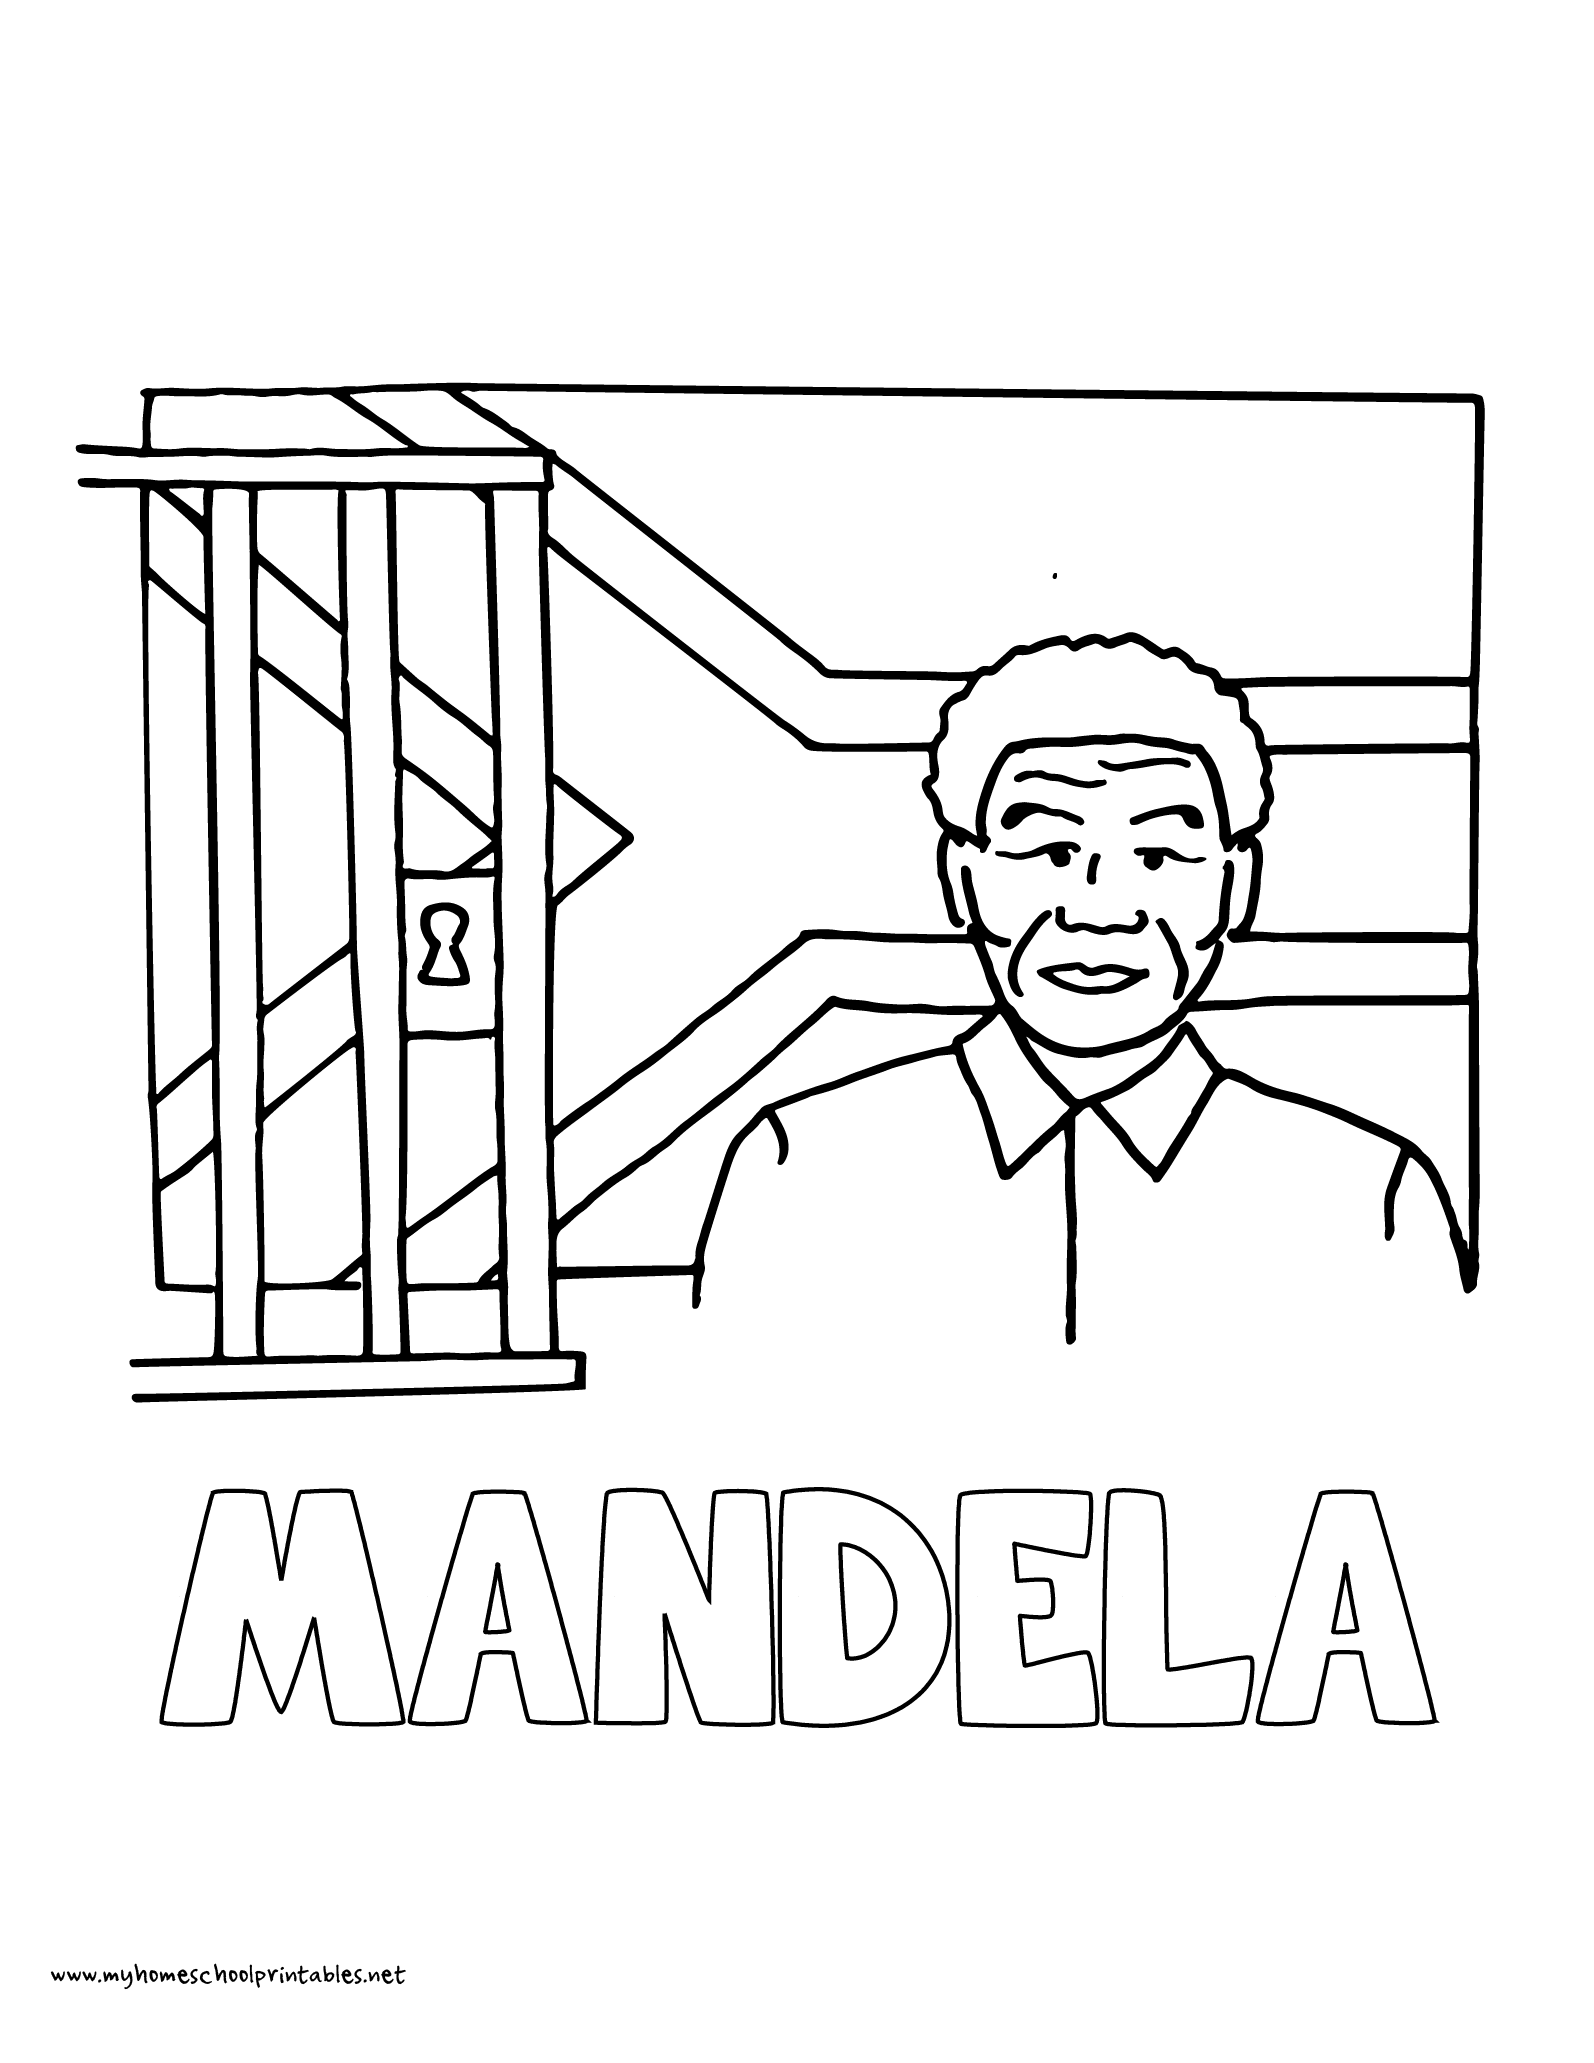 south africa coloring sheet continent coloring pages classroom doodles coloring south africa sheet